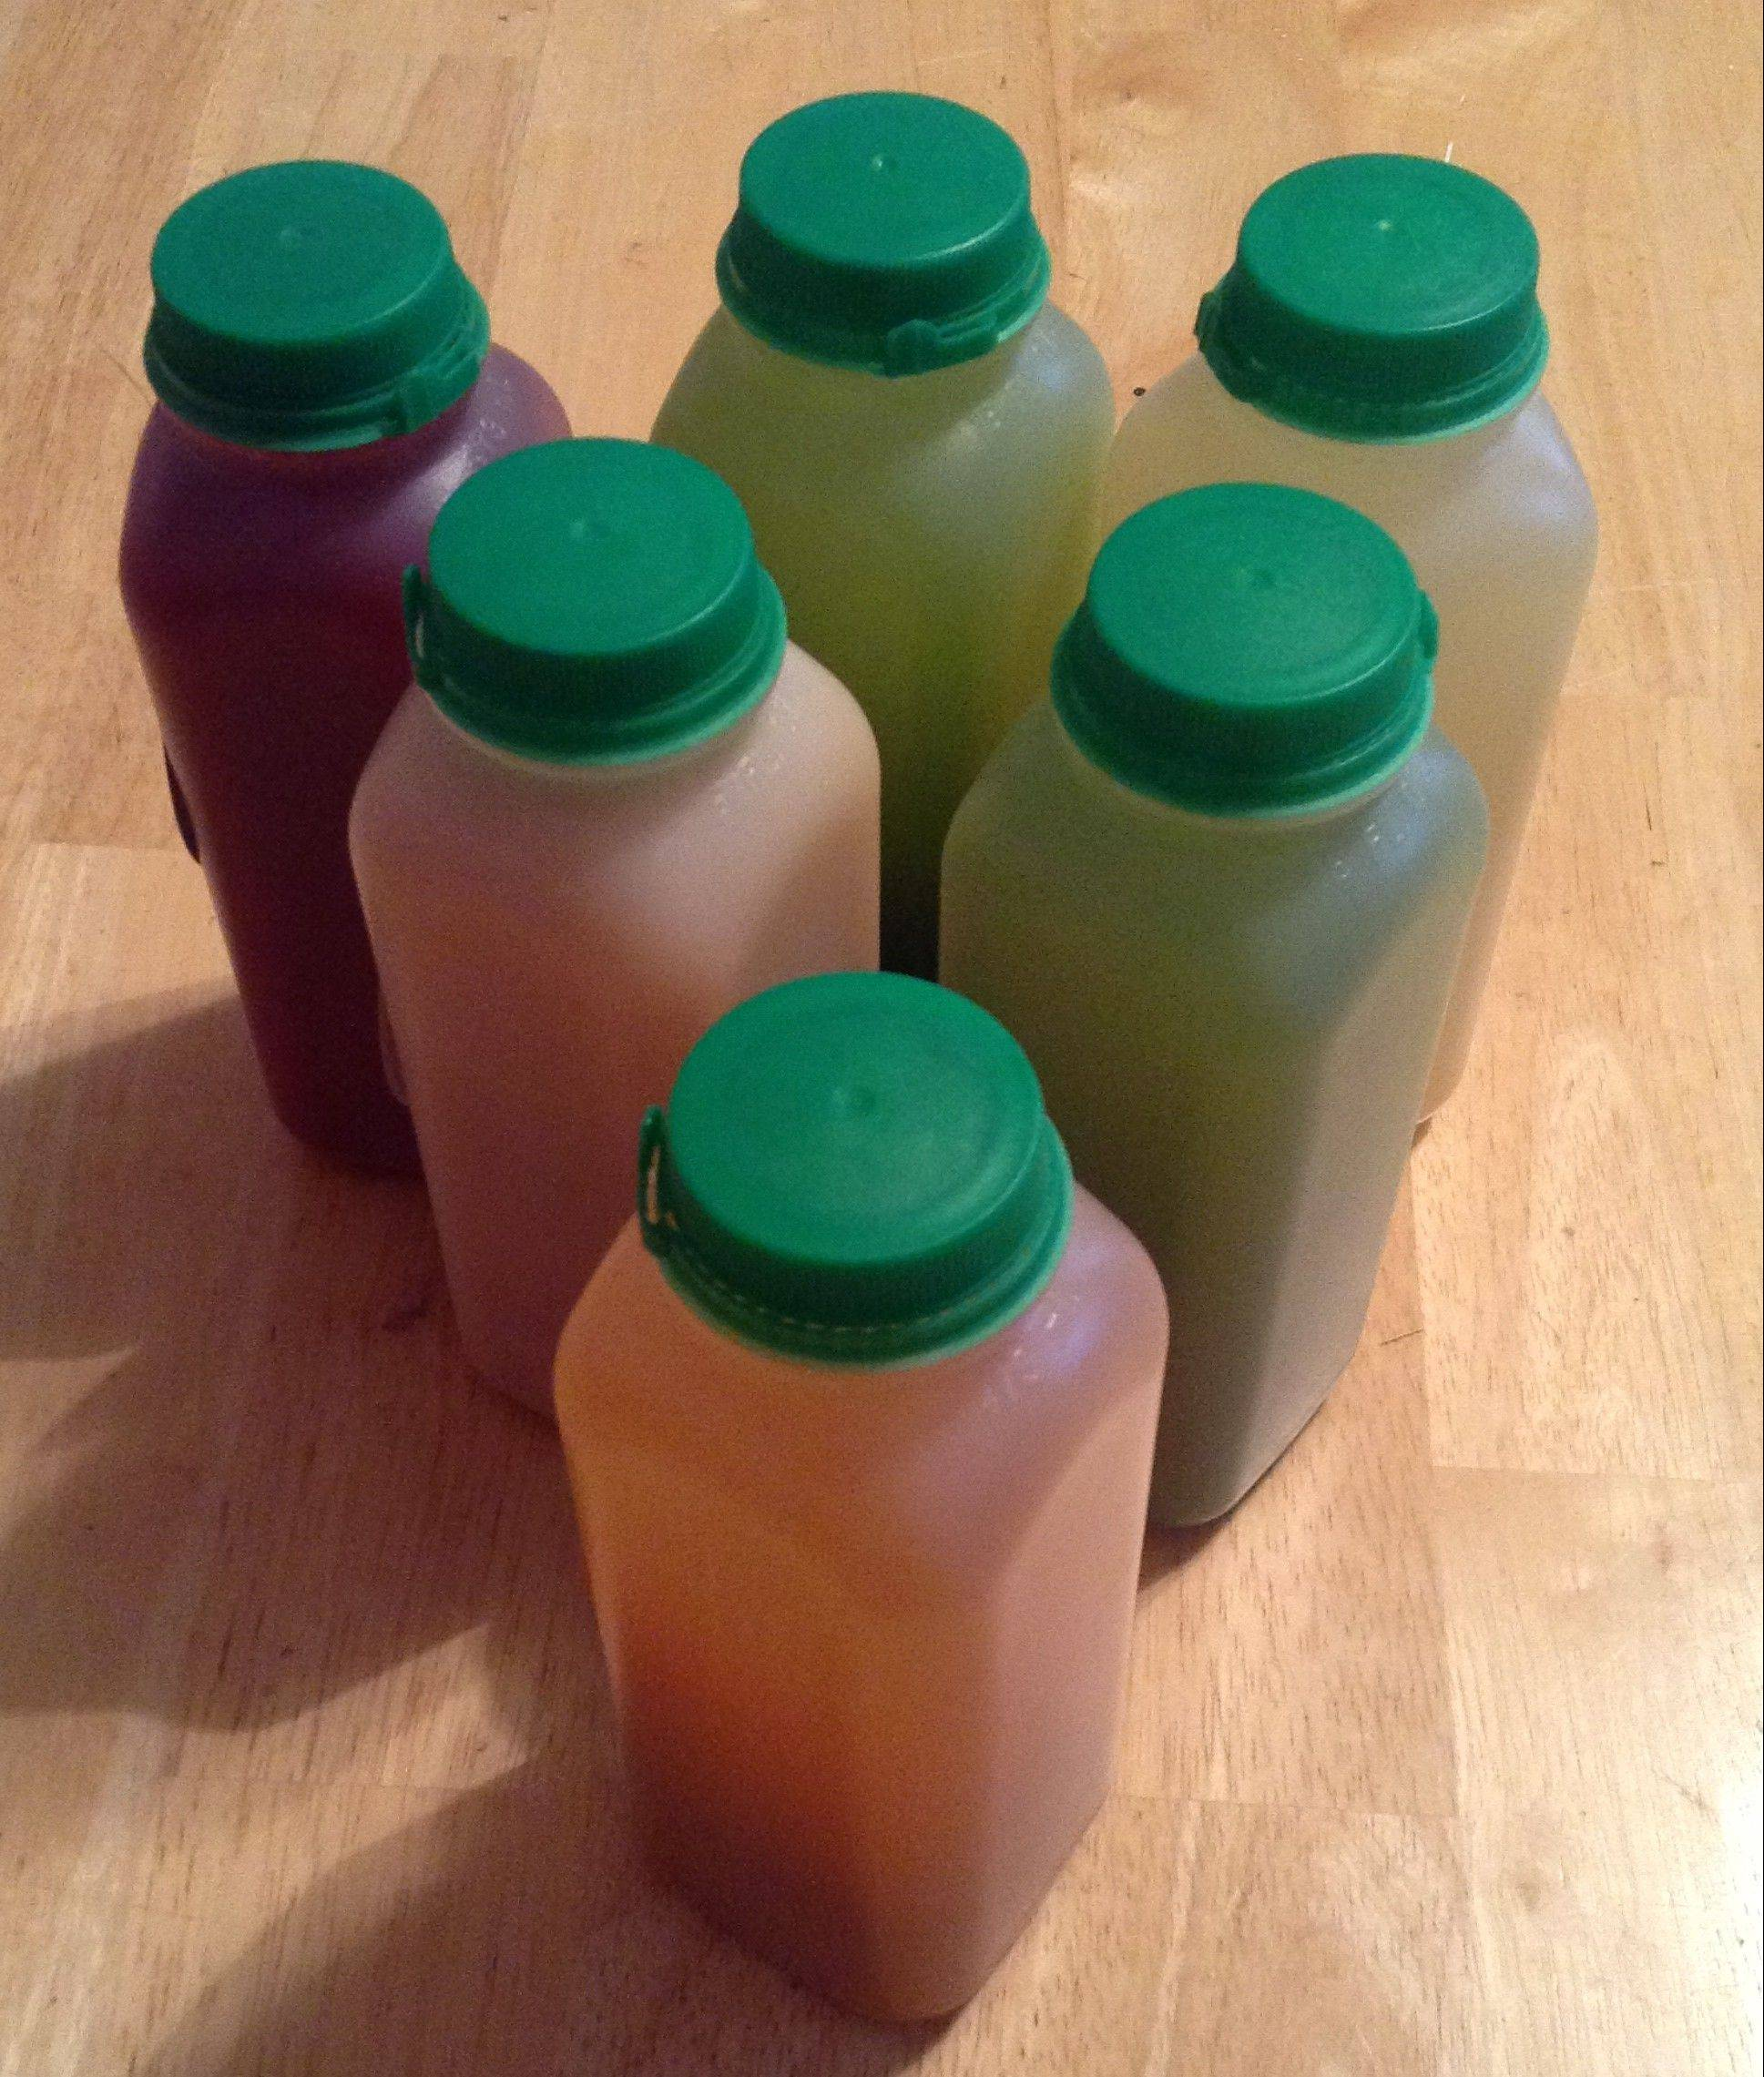 Pure Juice Cafe offers an assortment of six, 16-oz. juice bottles. This is what you would consumer in one day on the cleanse, supplementing only with water and caffeine-free herbal tea.